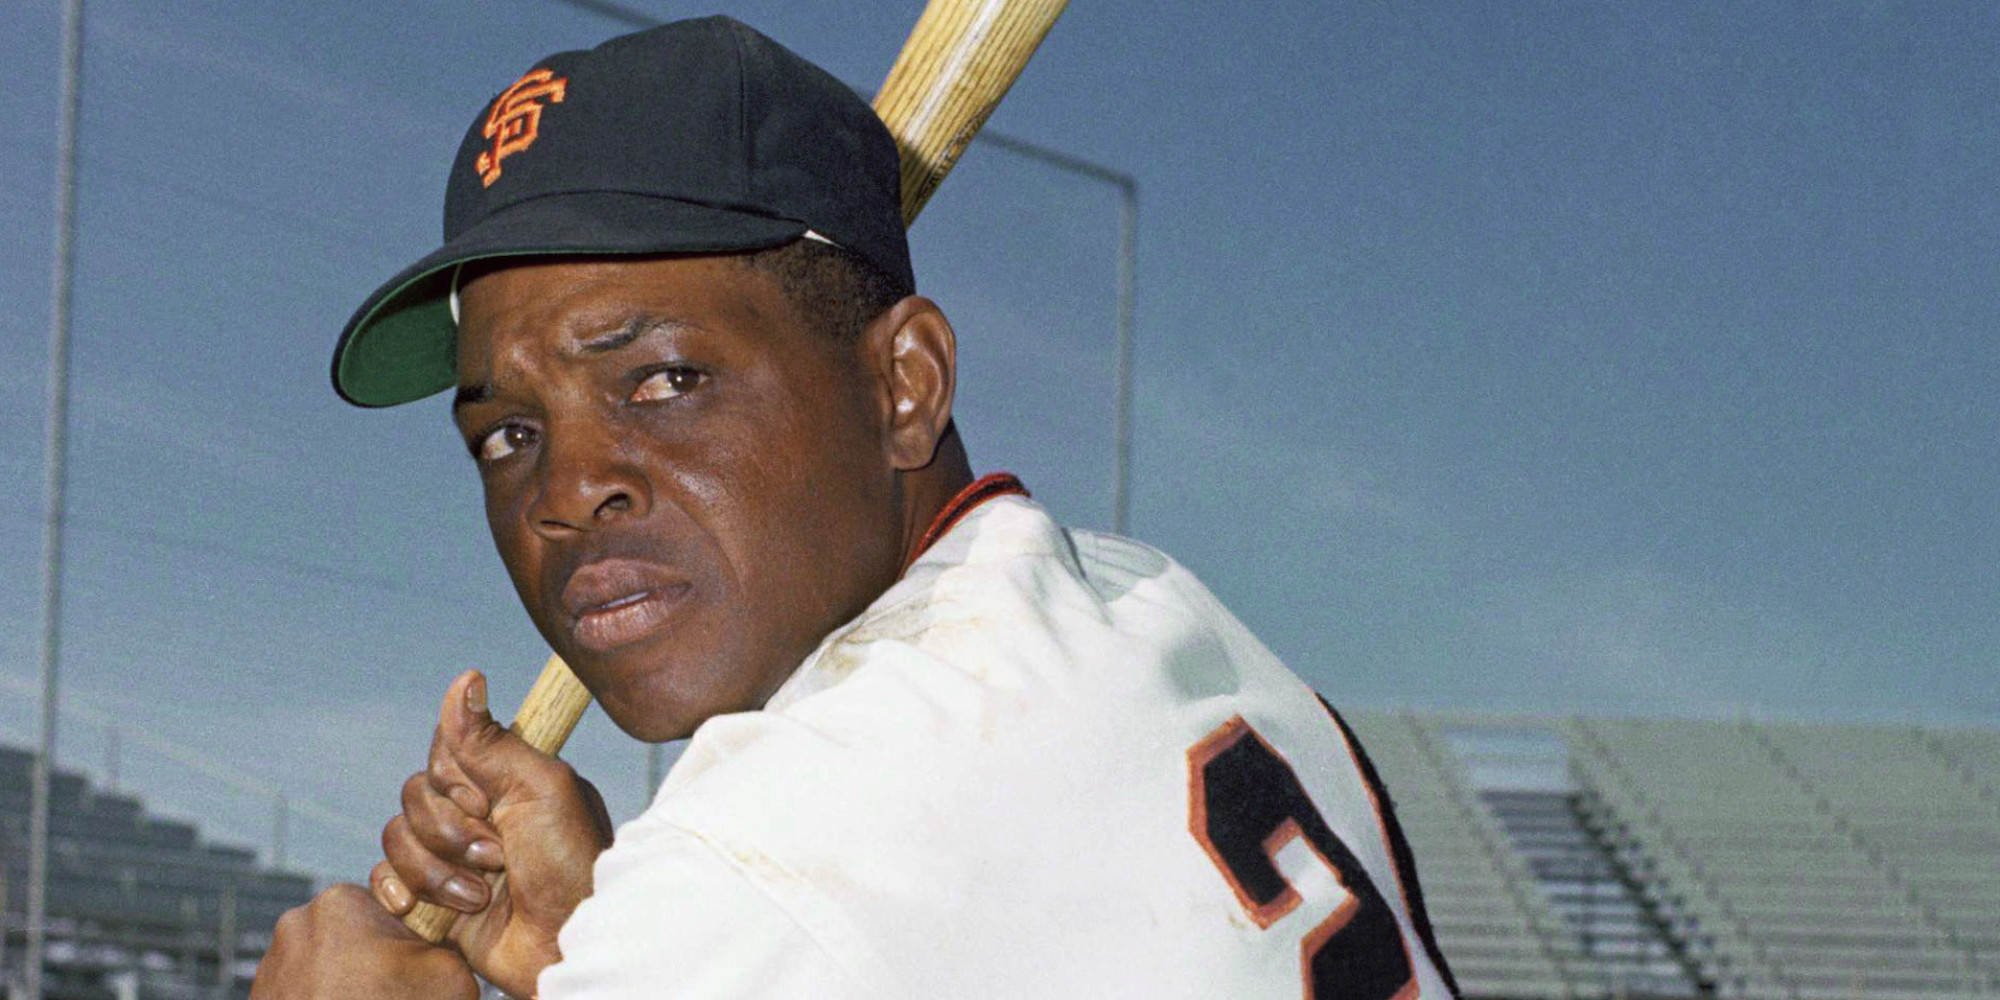 how many world series did willie mays play in